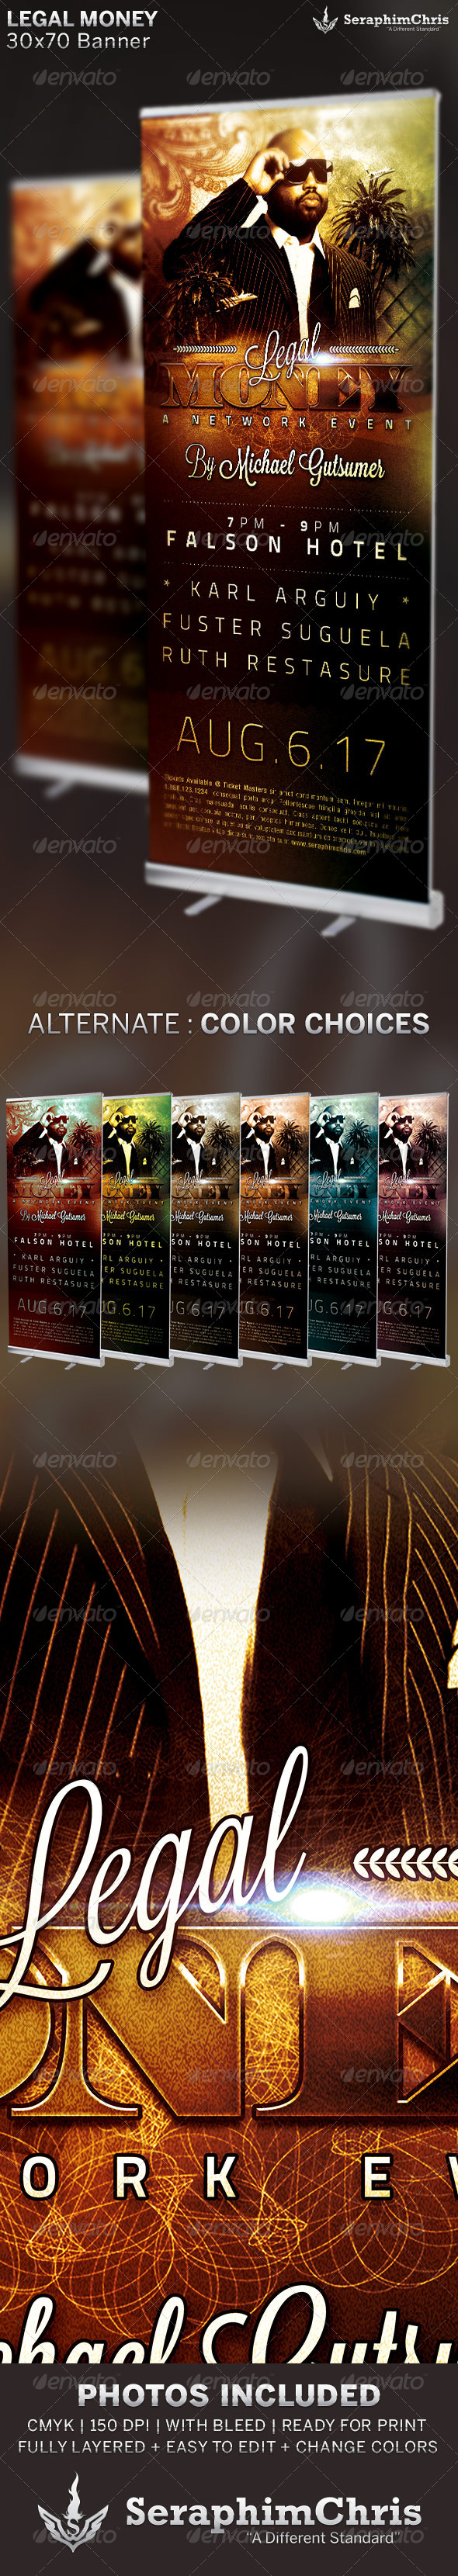 GraphicRiver Legal Money Networking Banner Template 6523701